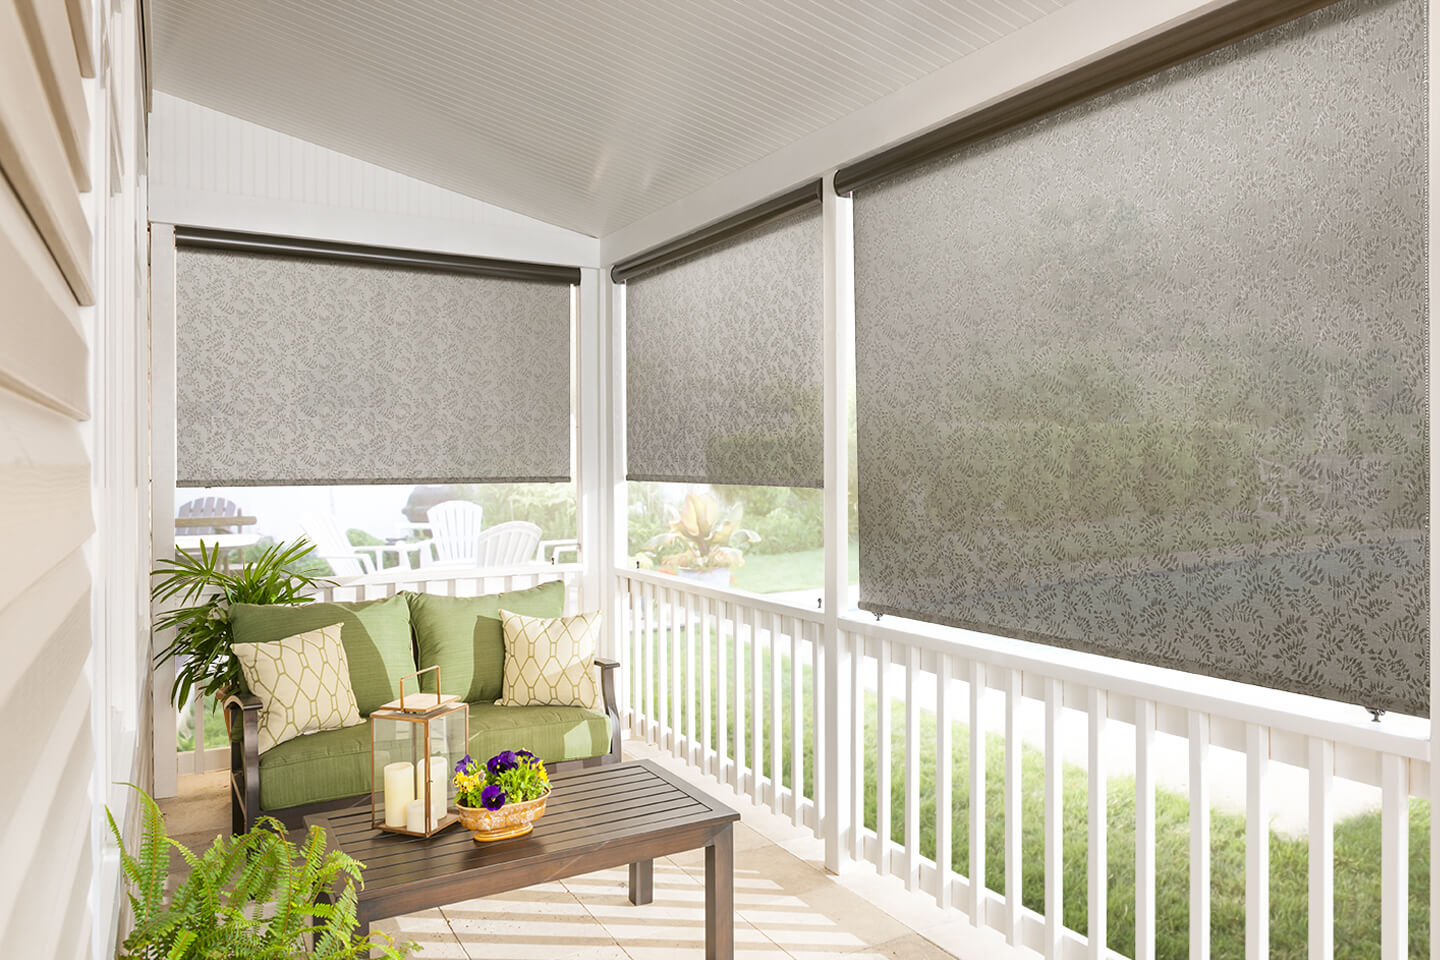 Outdoor Sun Blinds Custom Exterior Solar Shades Bali Blinds And Shades